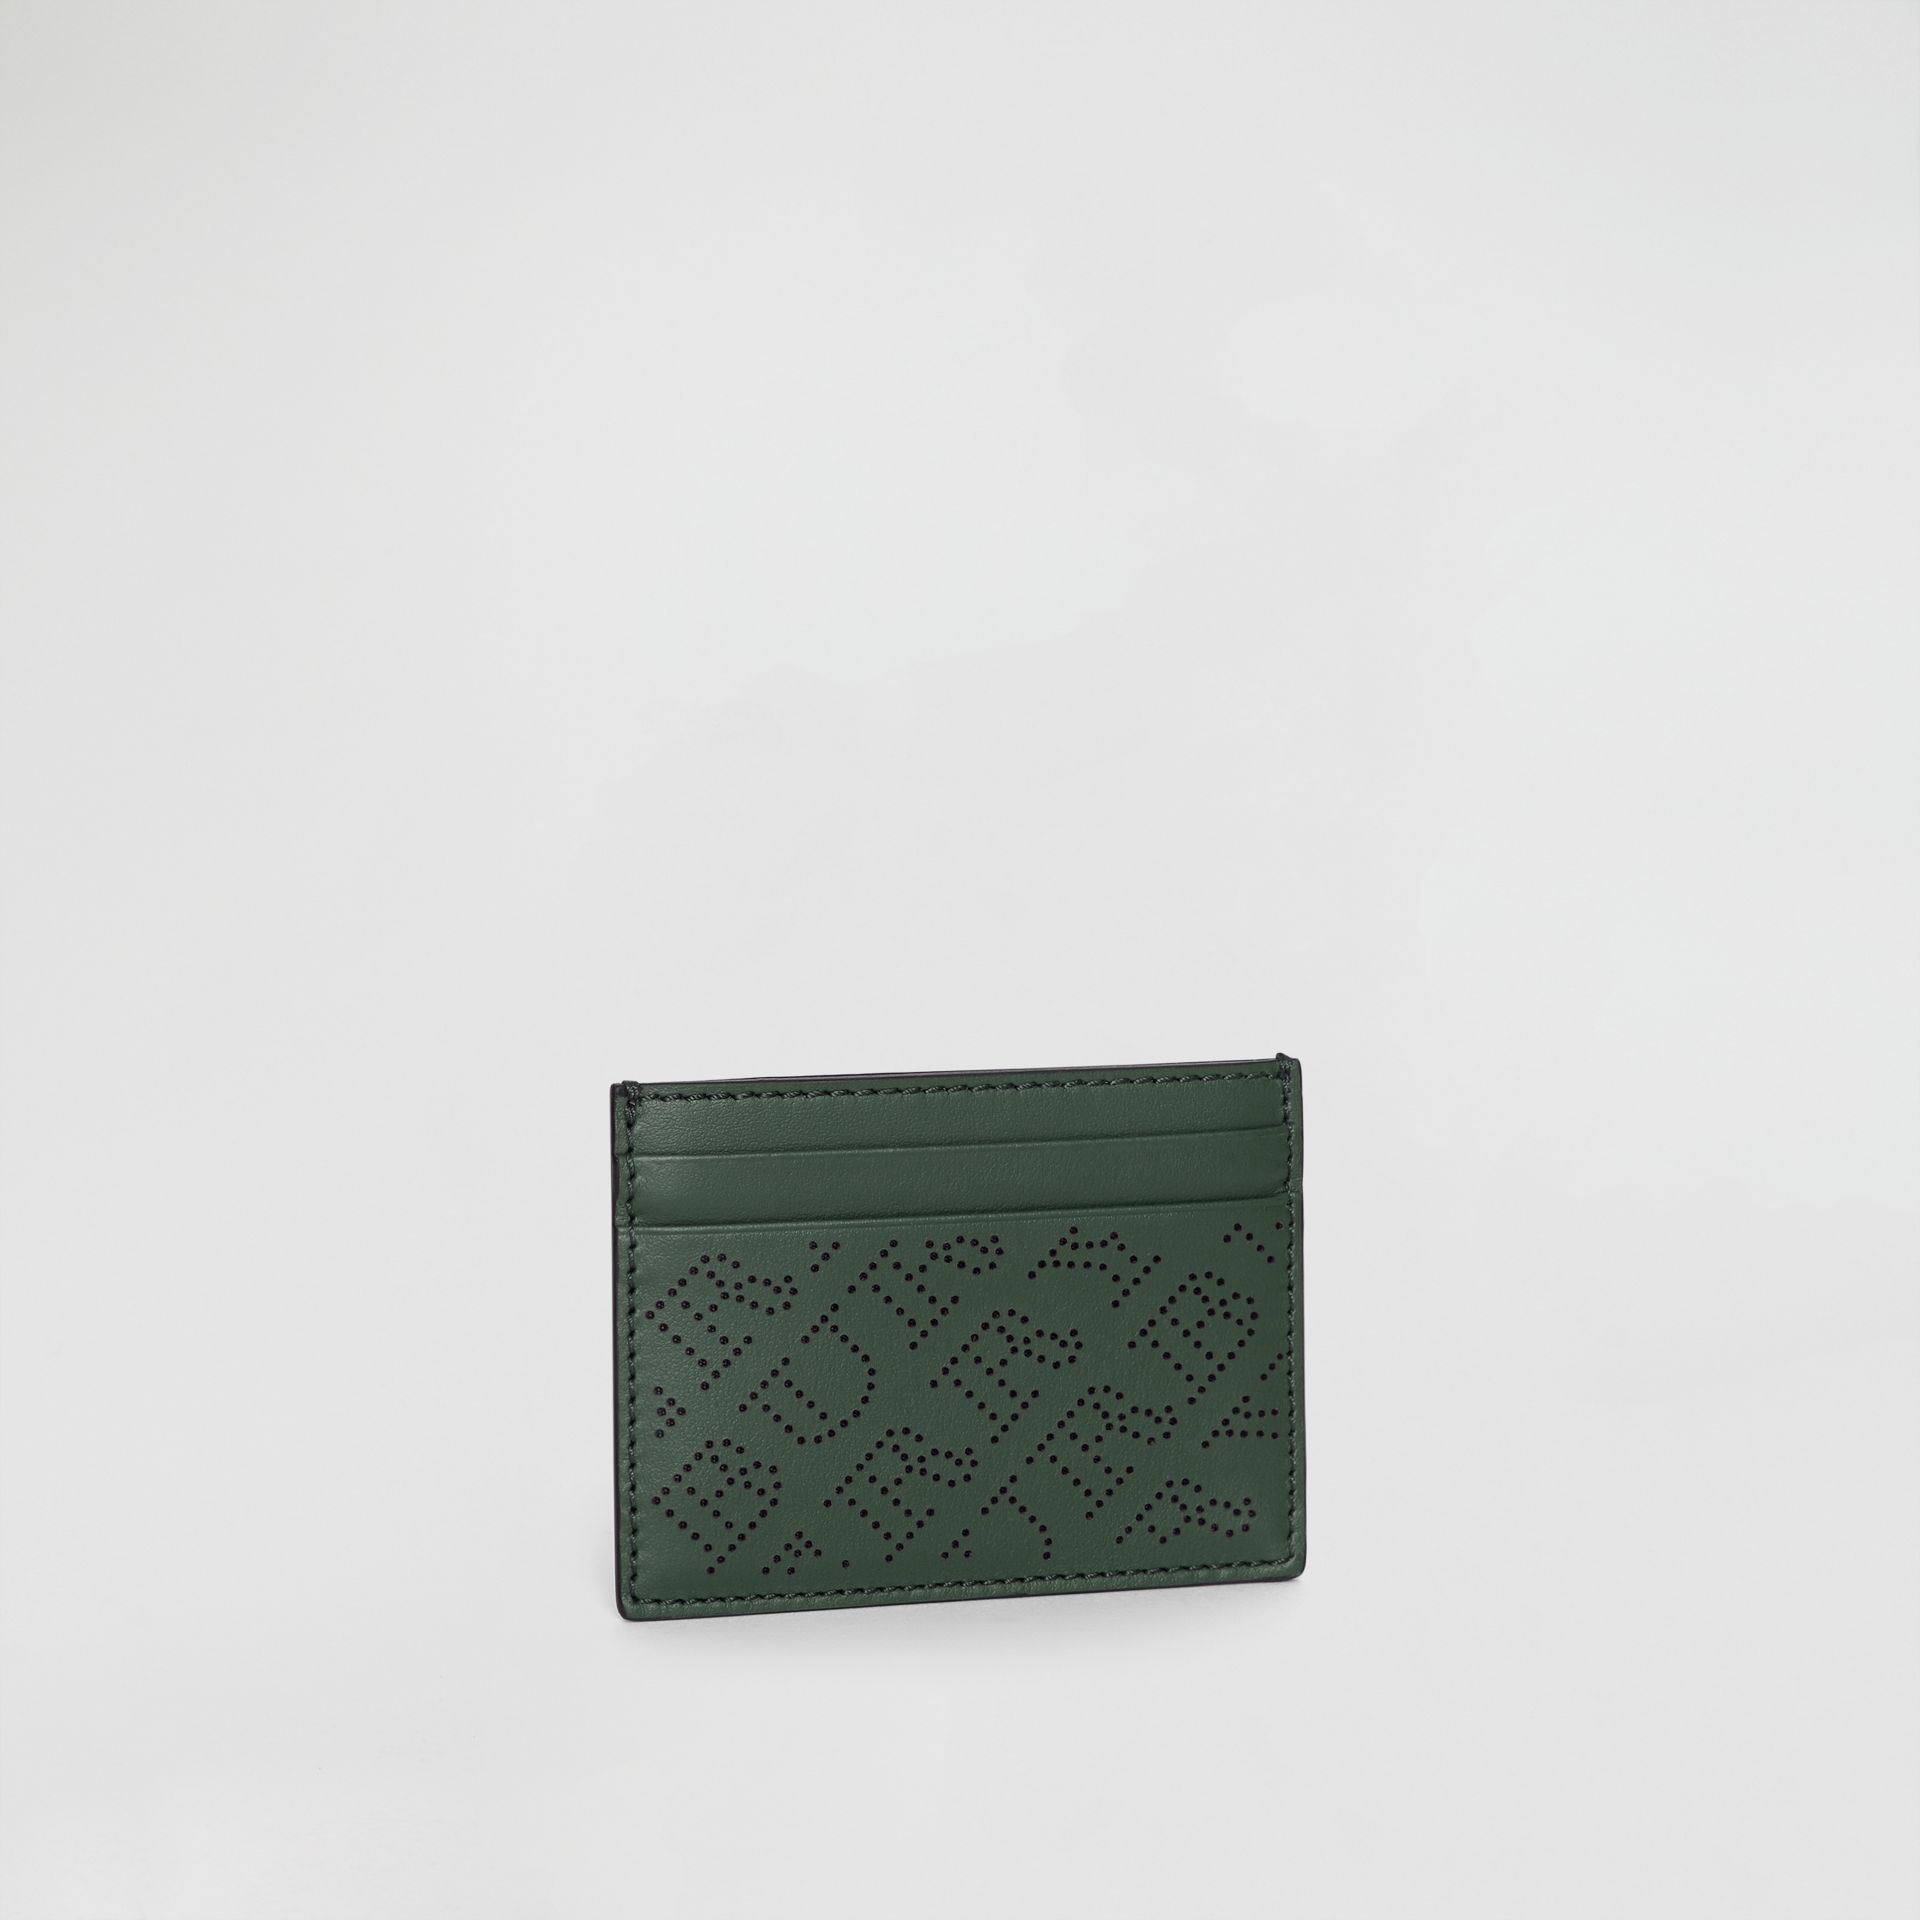 Perforated Logo Leather Card Case in Vintage Green - Women | Burberry - gallery image 4